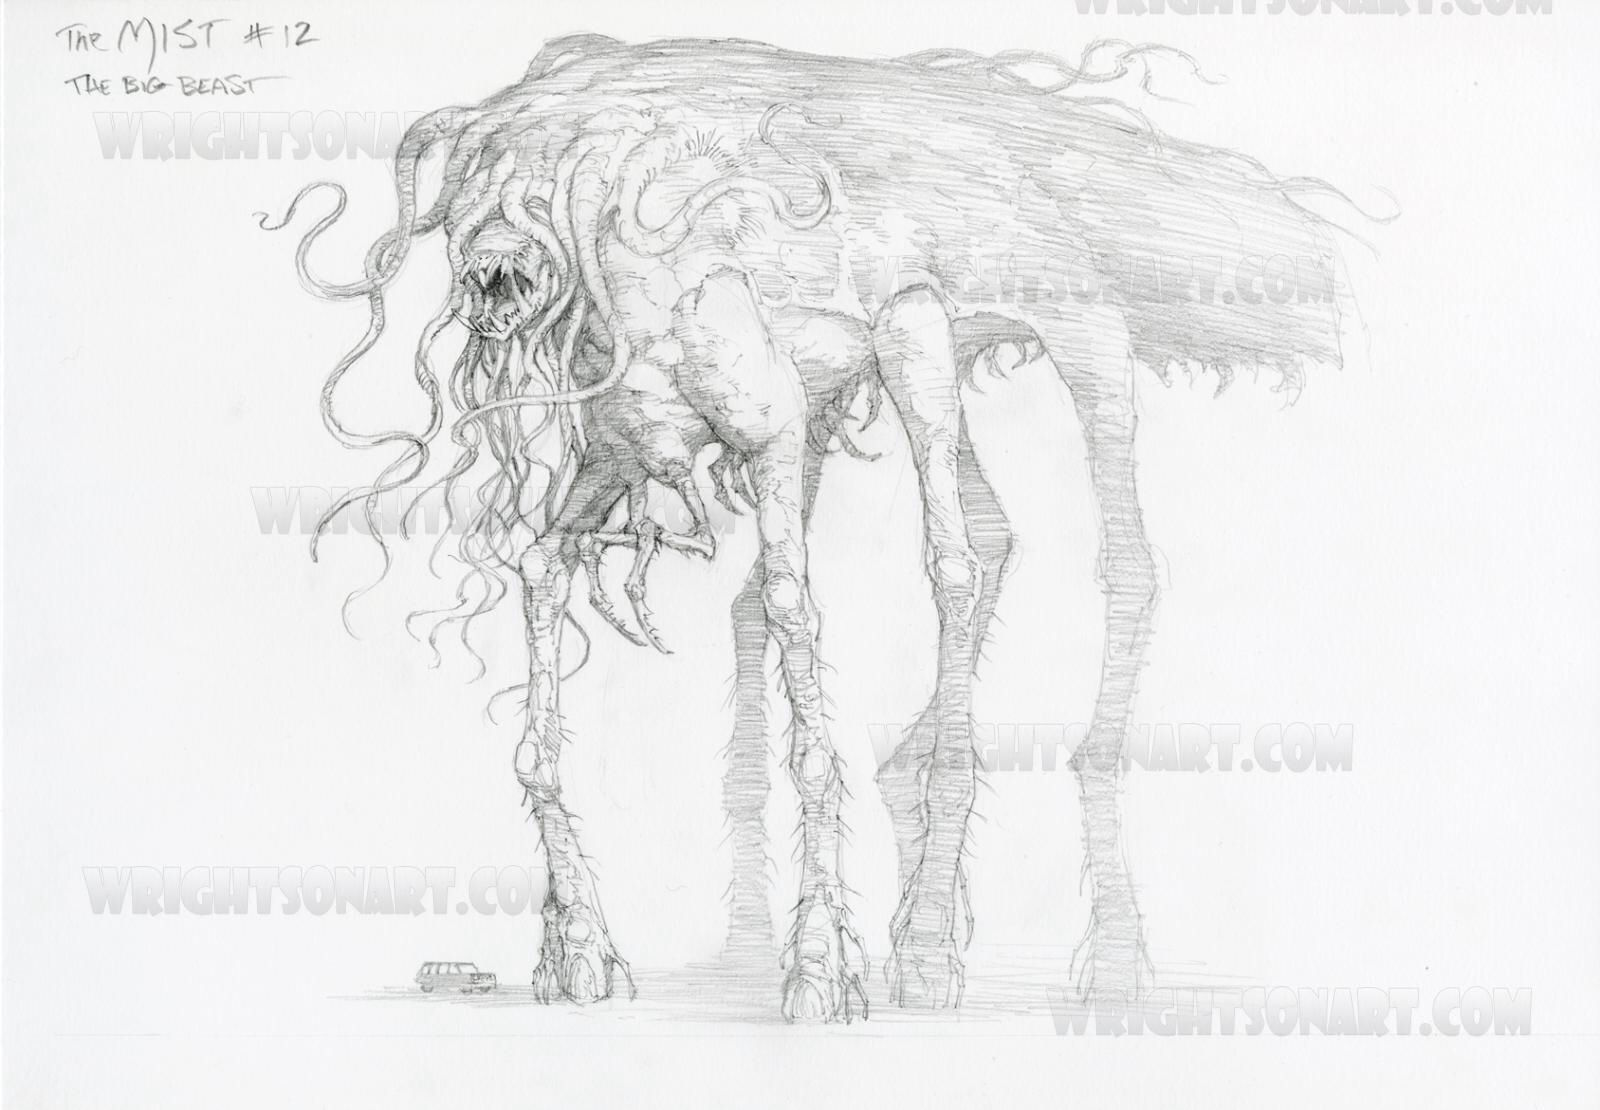 Some More Creatures From The Mist 괴물 포스터 디자인 포스터